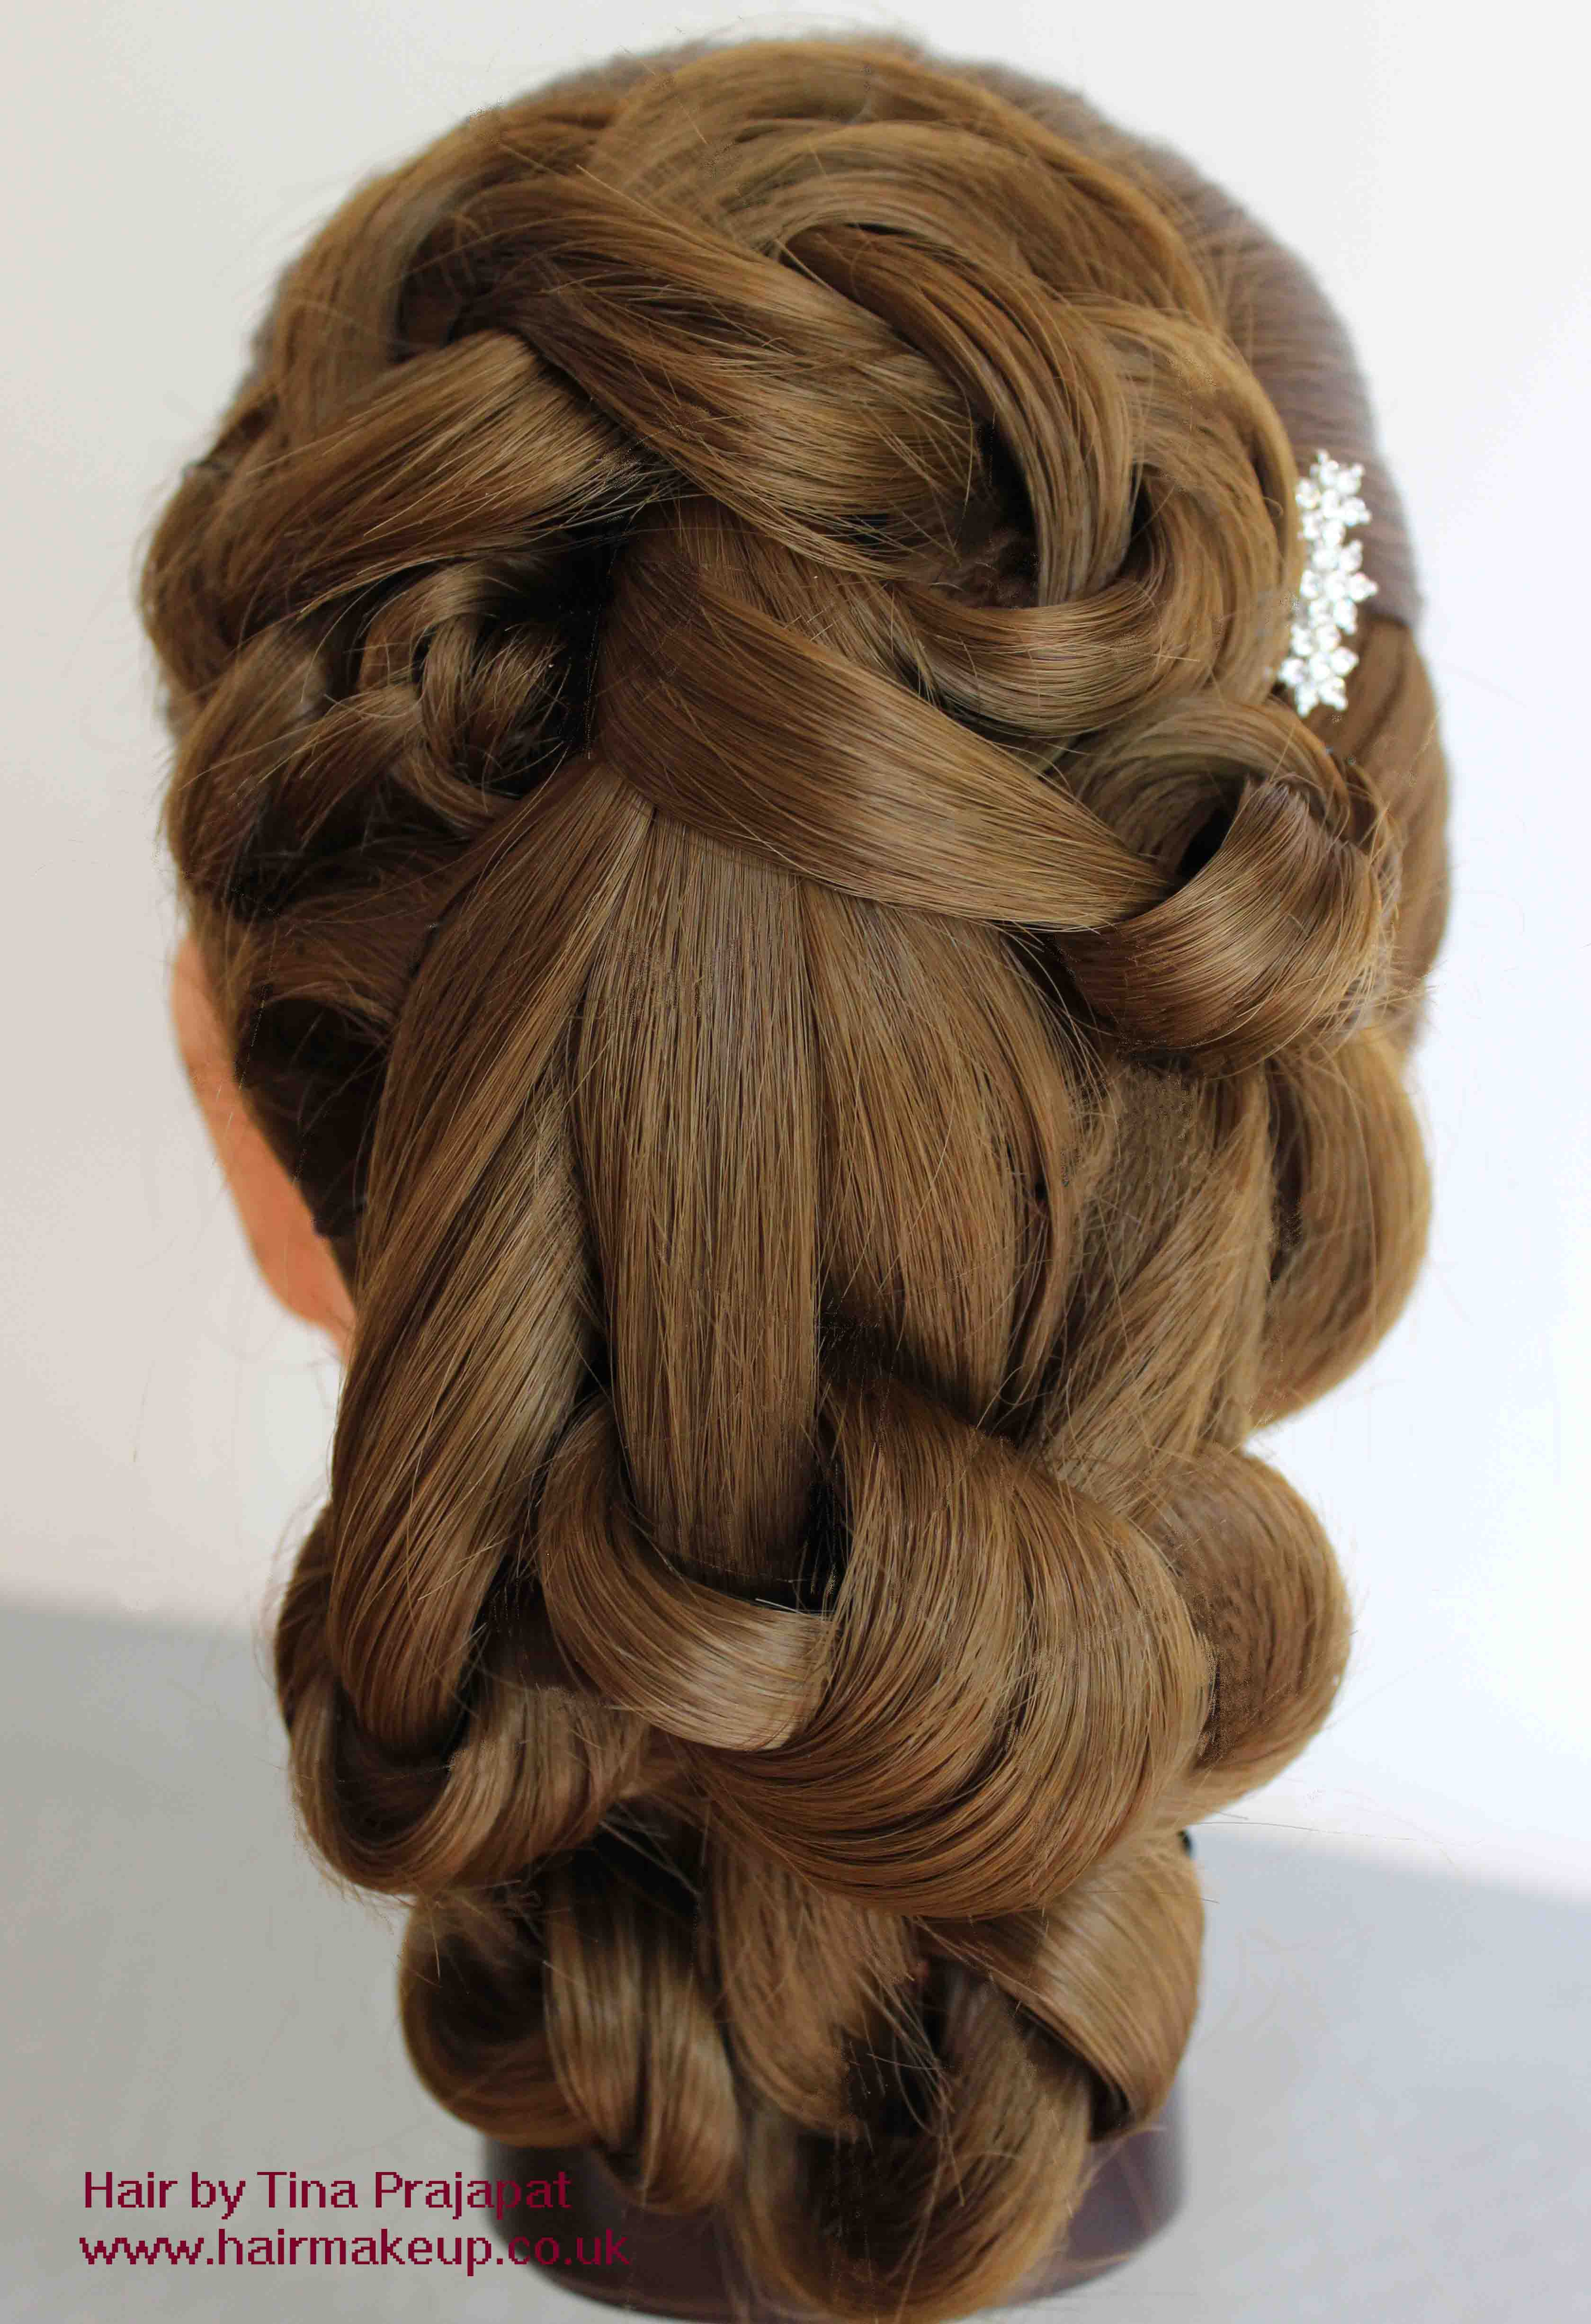 Swell Step By Step Loosely Draped Knotted Hairstyle Short Hairstyles Gunalazisus